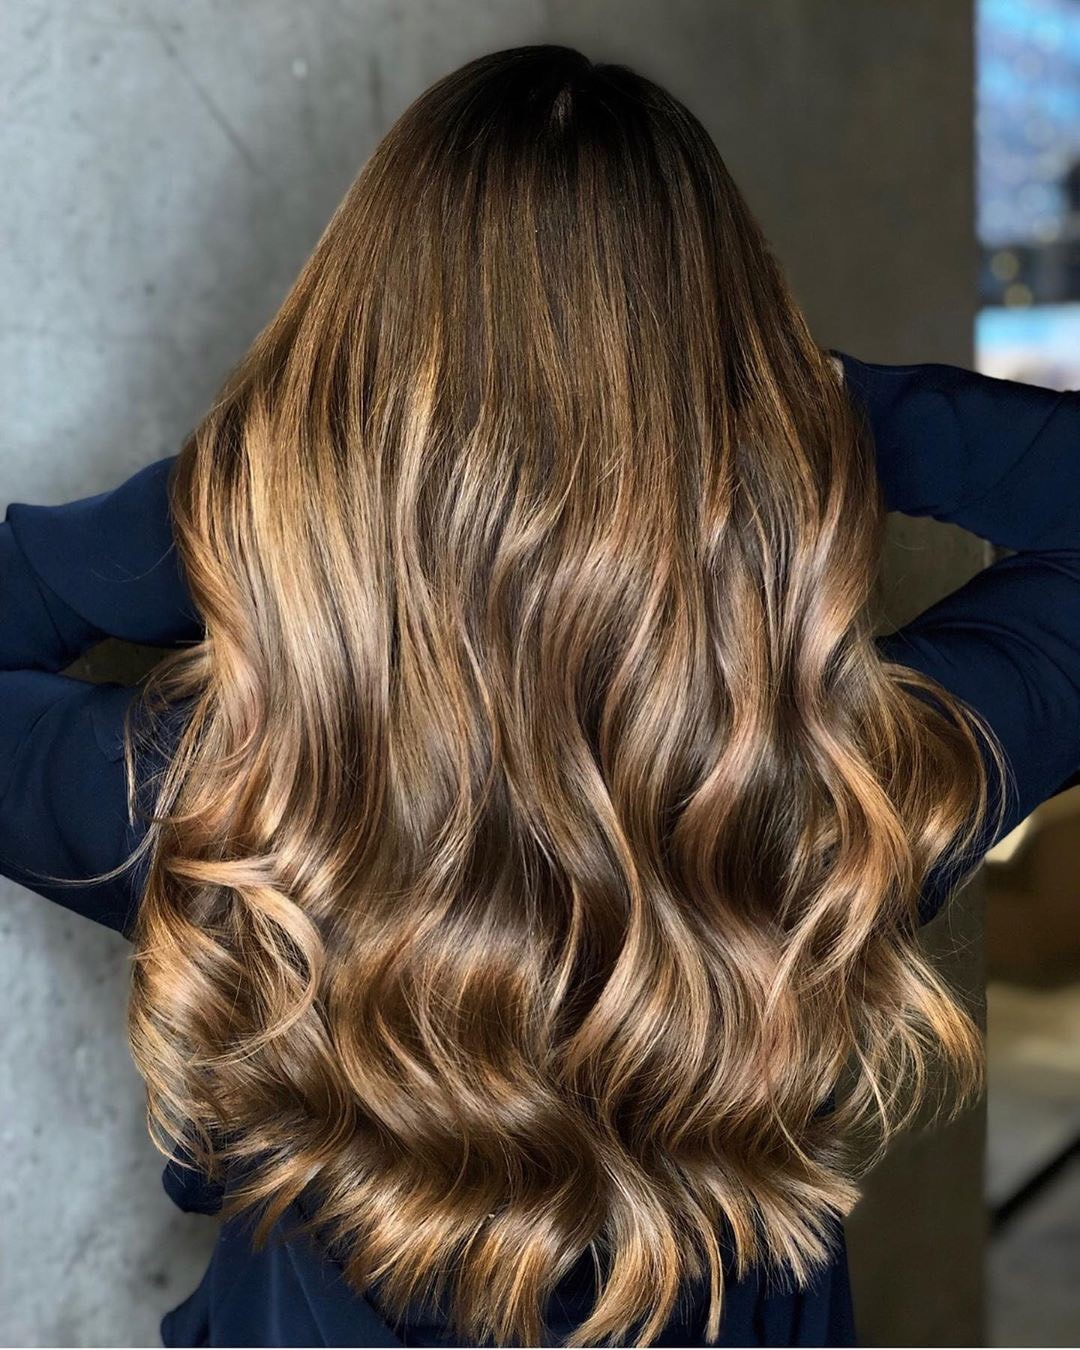 5-Spectacular-2020-Hair-Color-Trends-for-Everyone